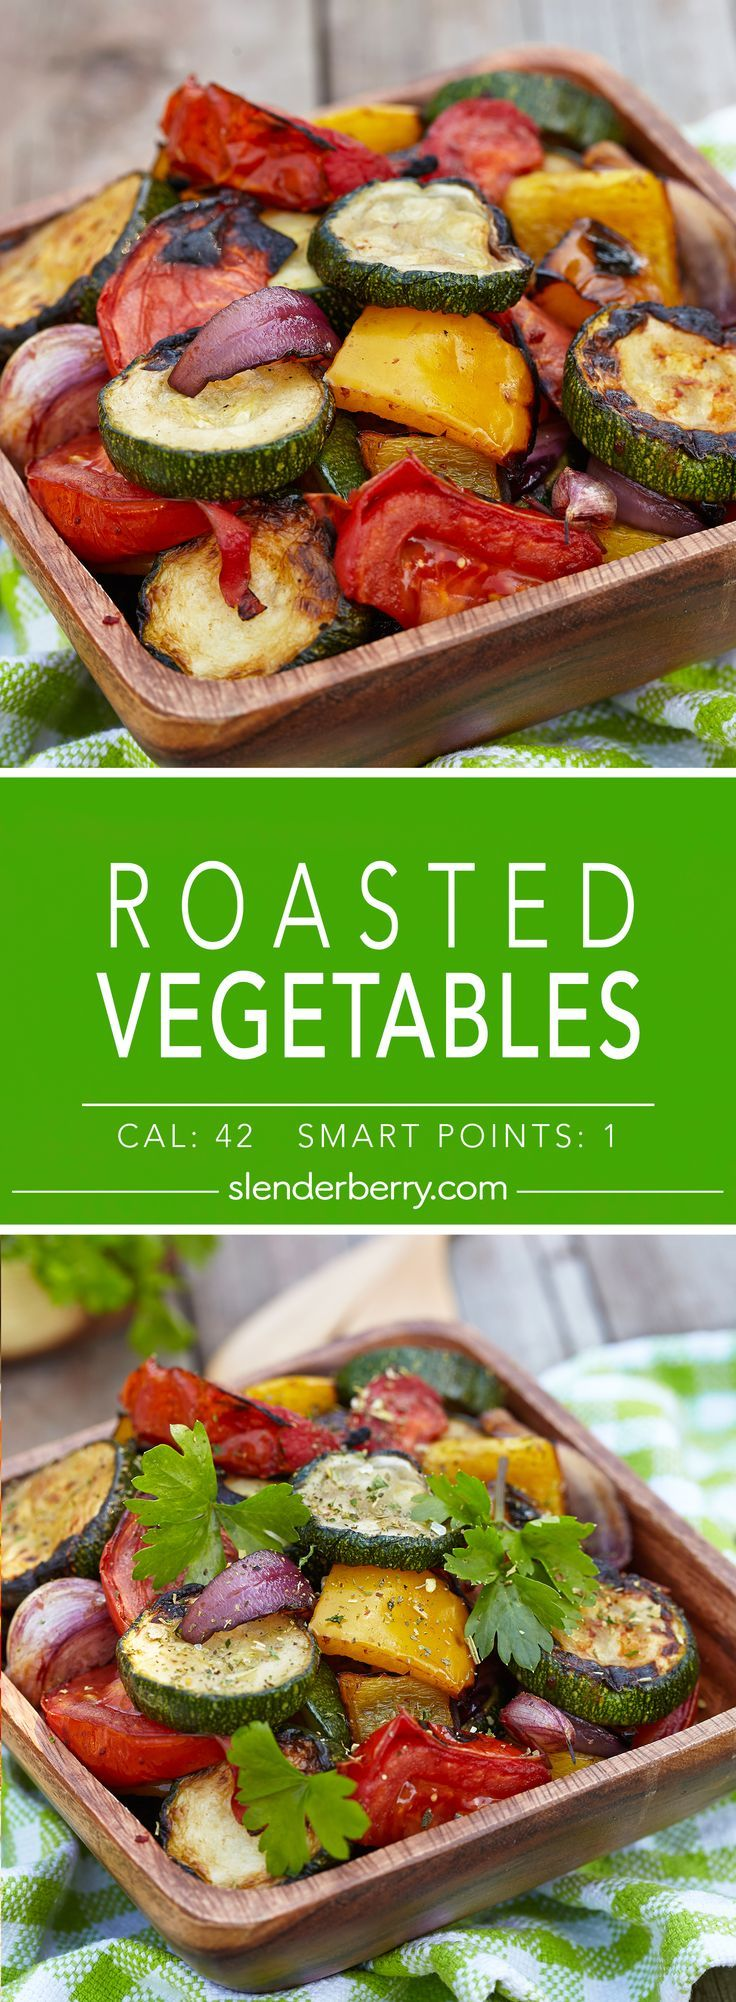 Roasted Vegetables - Slenderberry